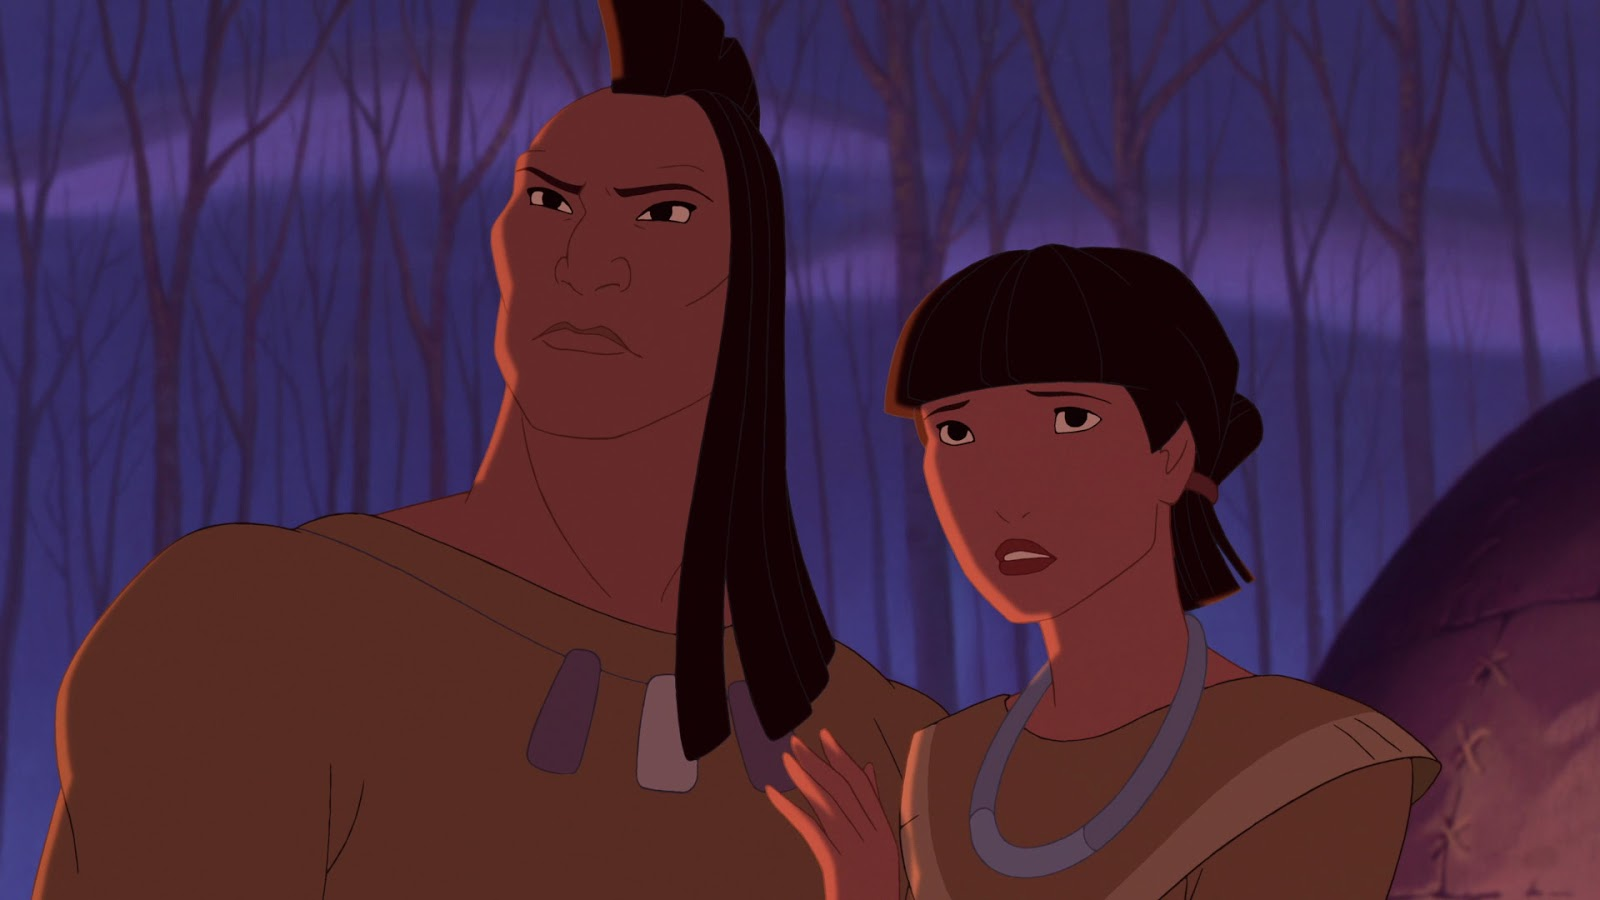 film analysis pocahontas Check out the exclusive tvguidecom movie review and see our movie rating for pocahontas ii: journey to a new world.